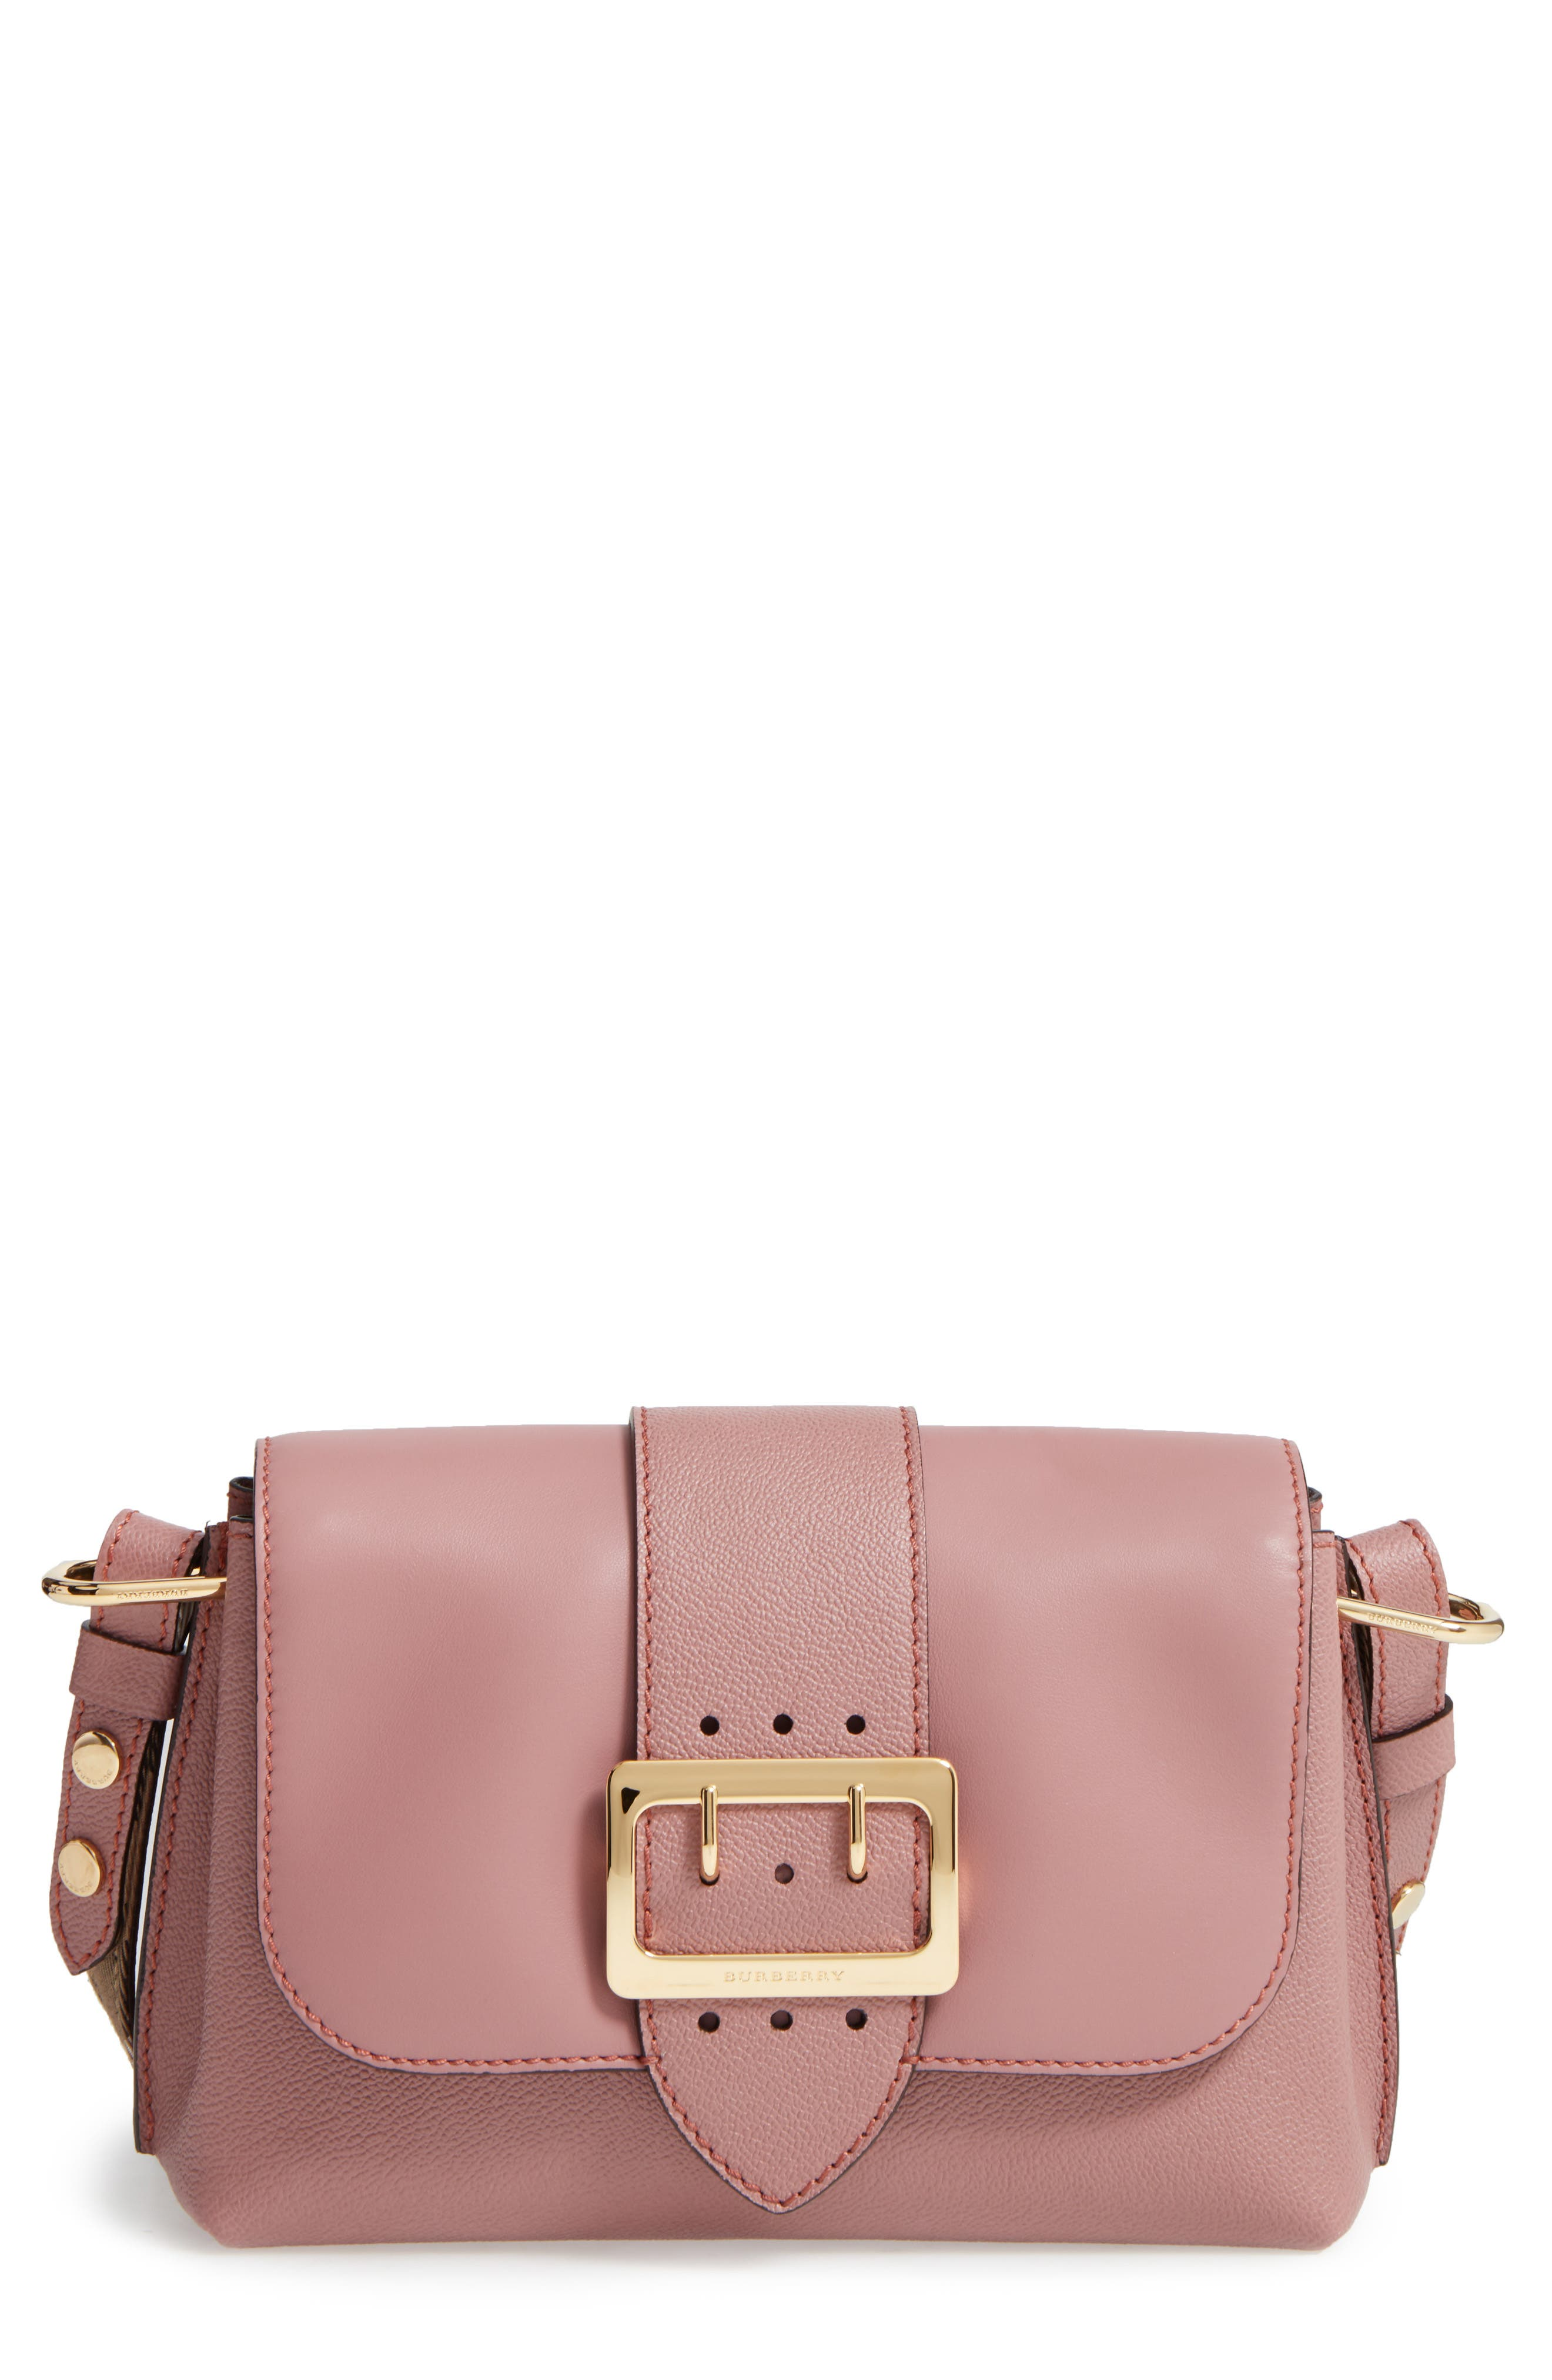 Small Medley Leather Shoulder Bag,                         Main,                         color, Dusty Pink